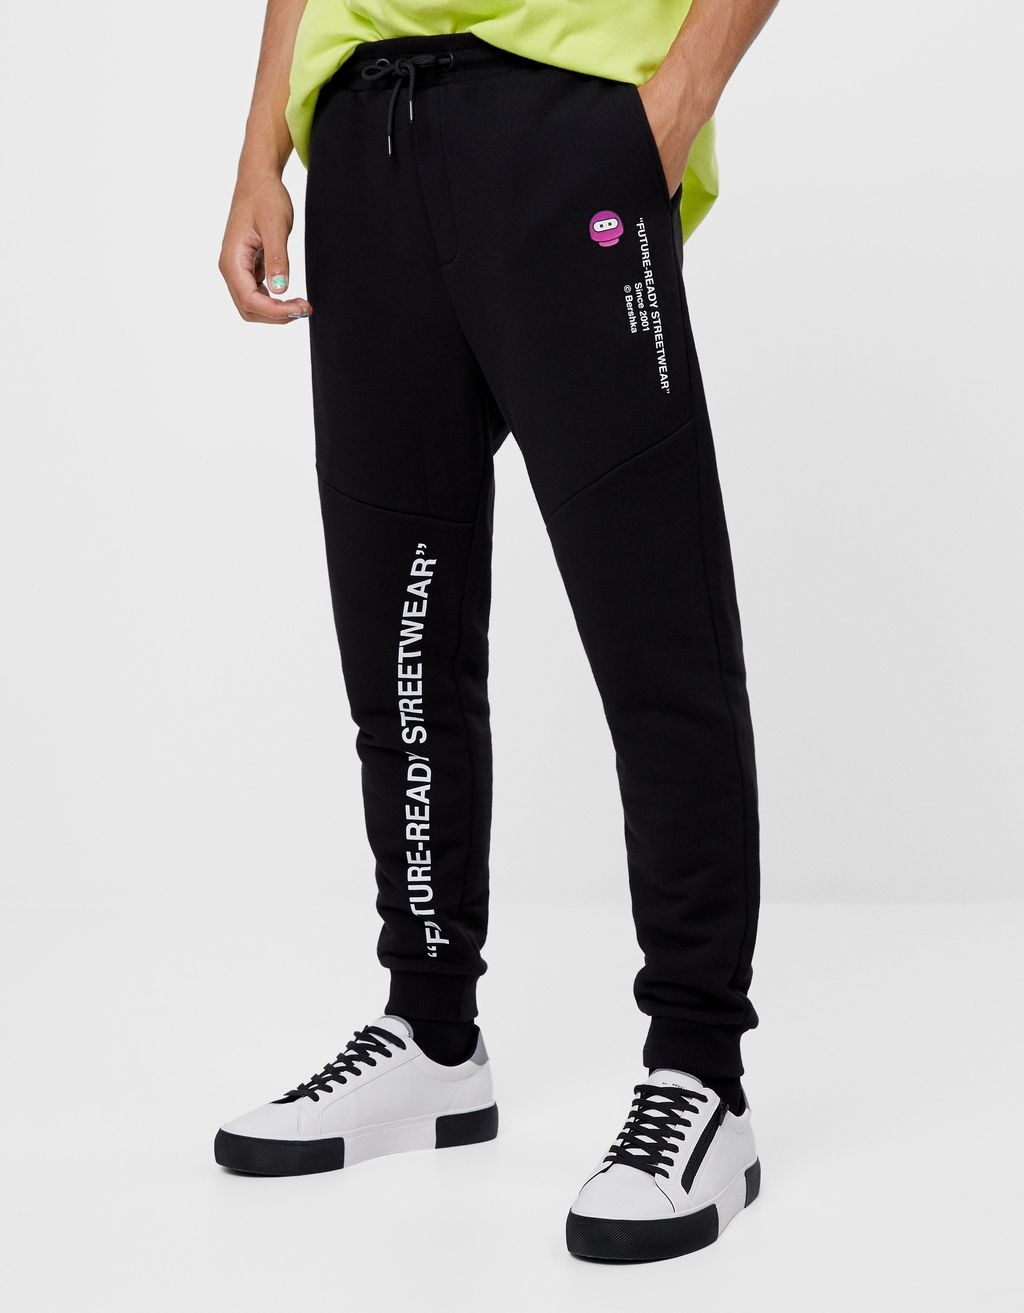 Pantalon jogger FUTURE-READY